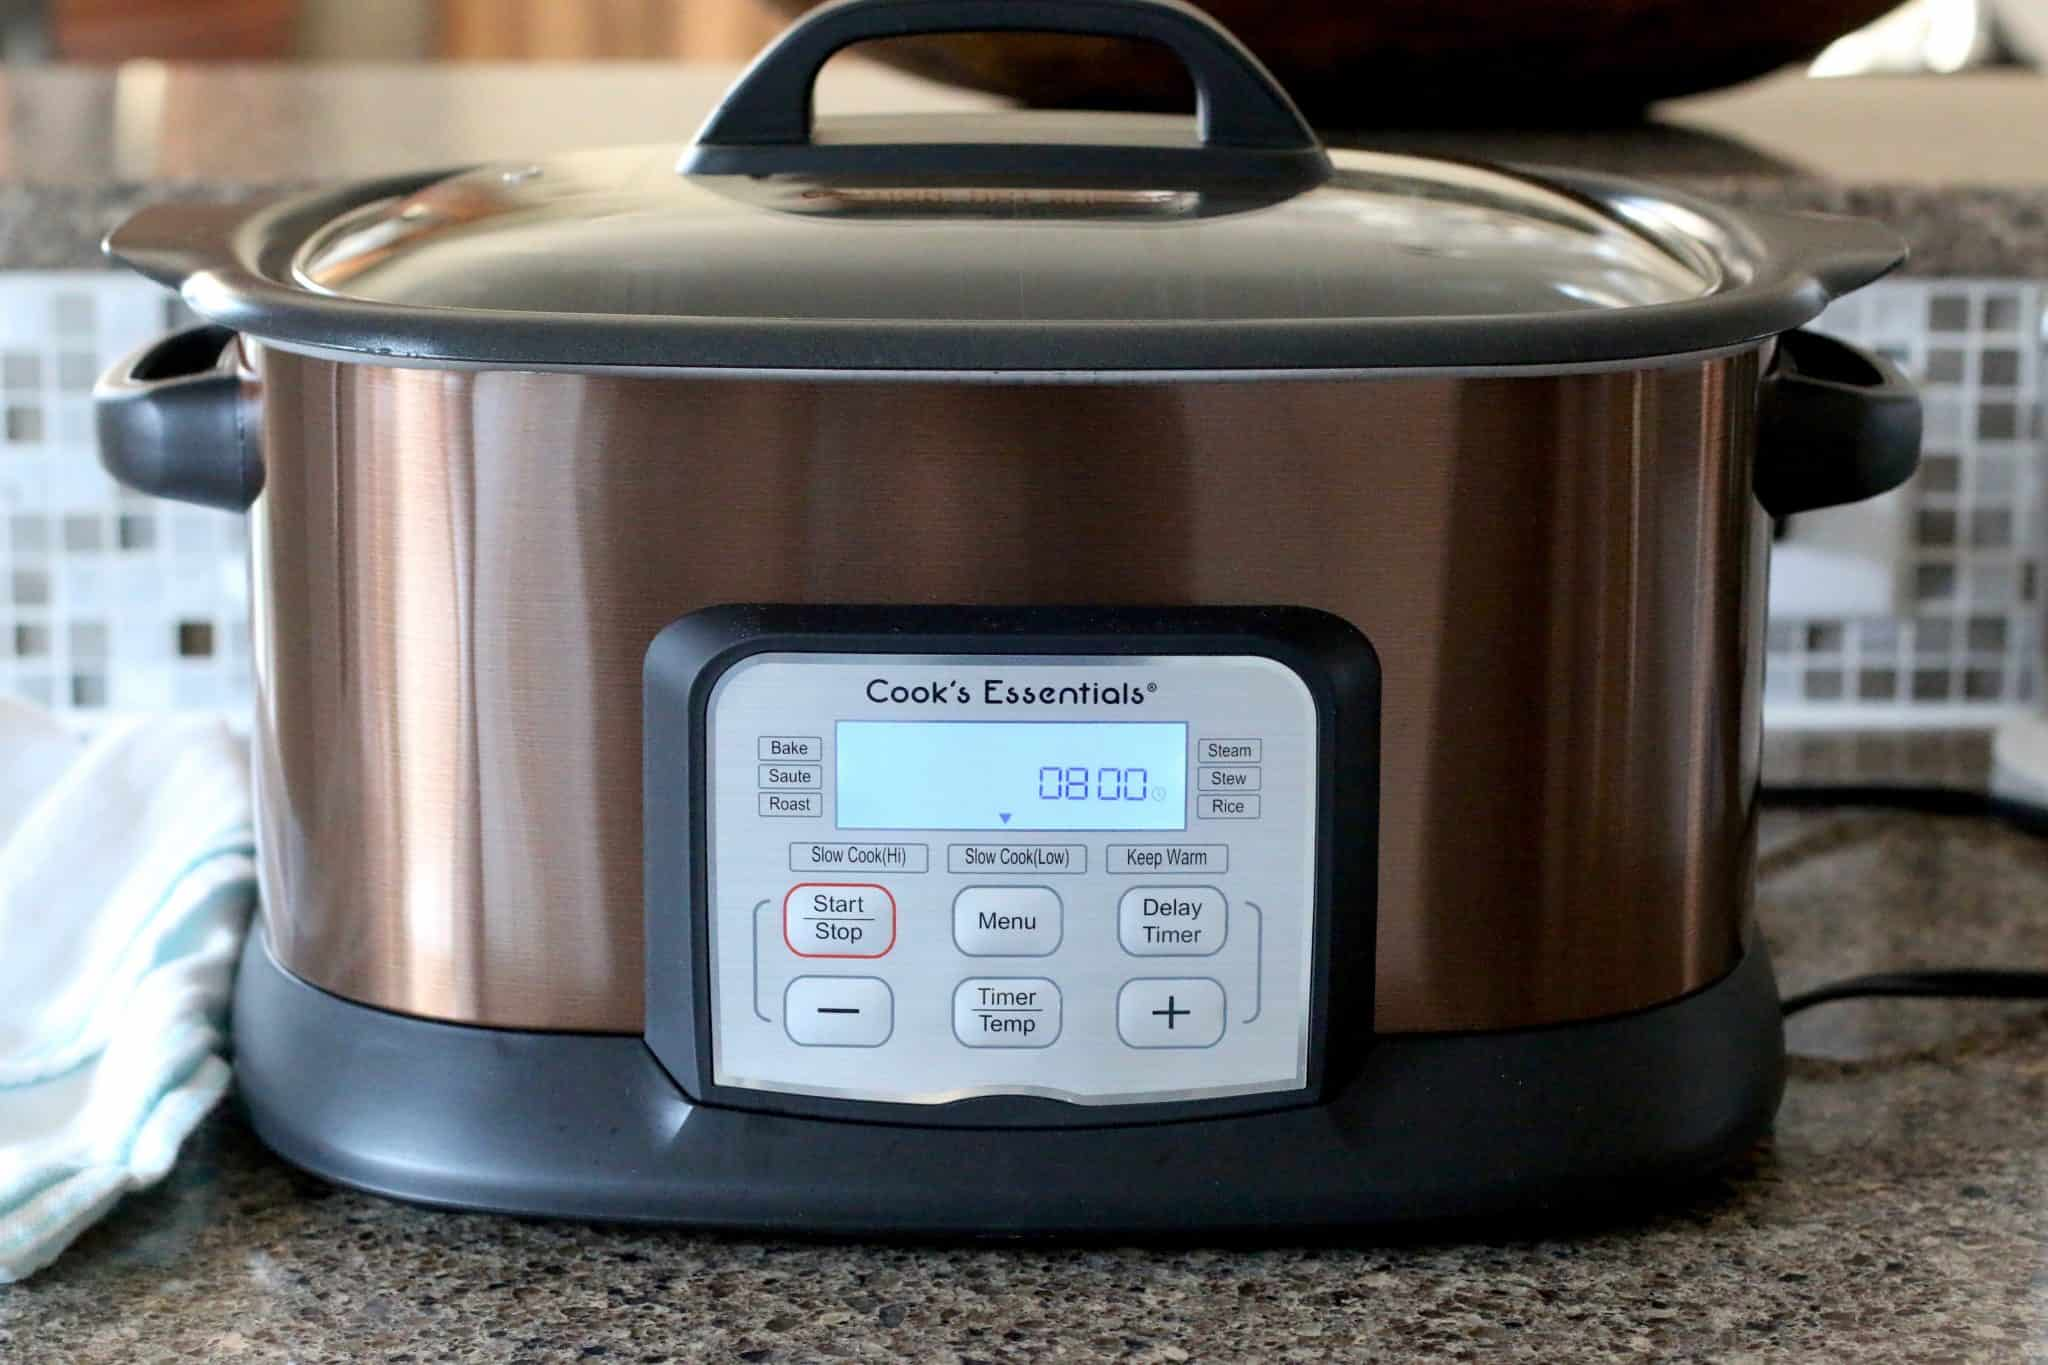 6 quart oval slow cooker set on low temperature for 8 hours.